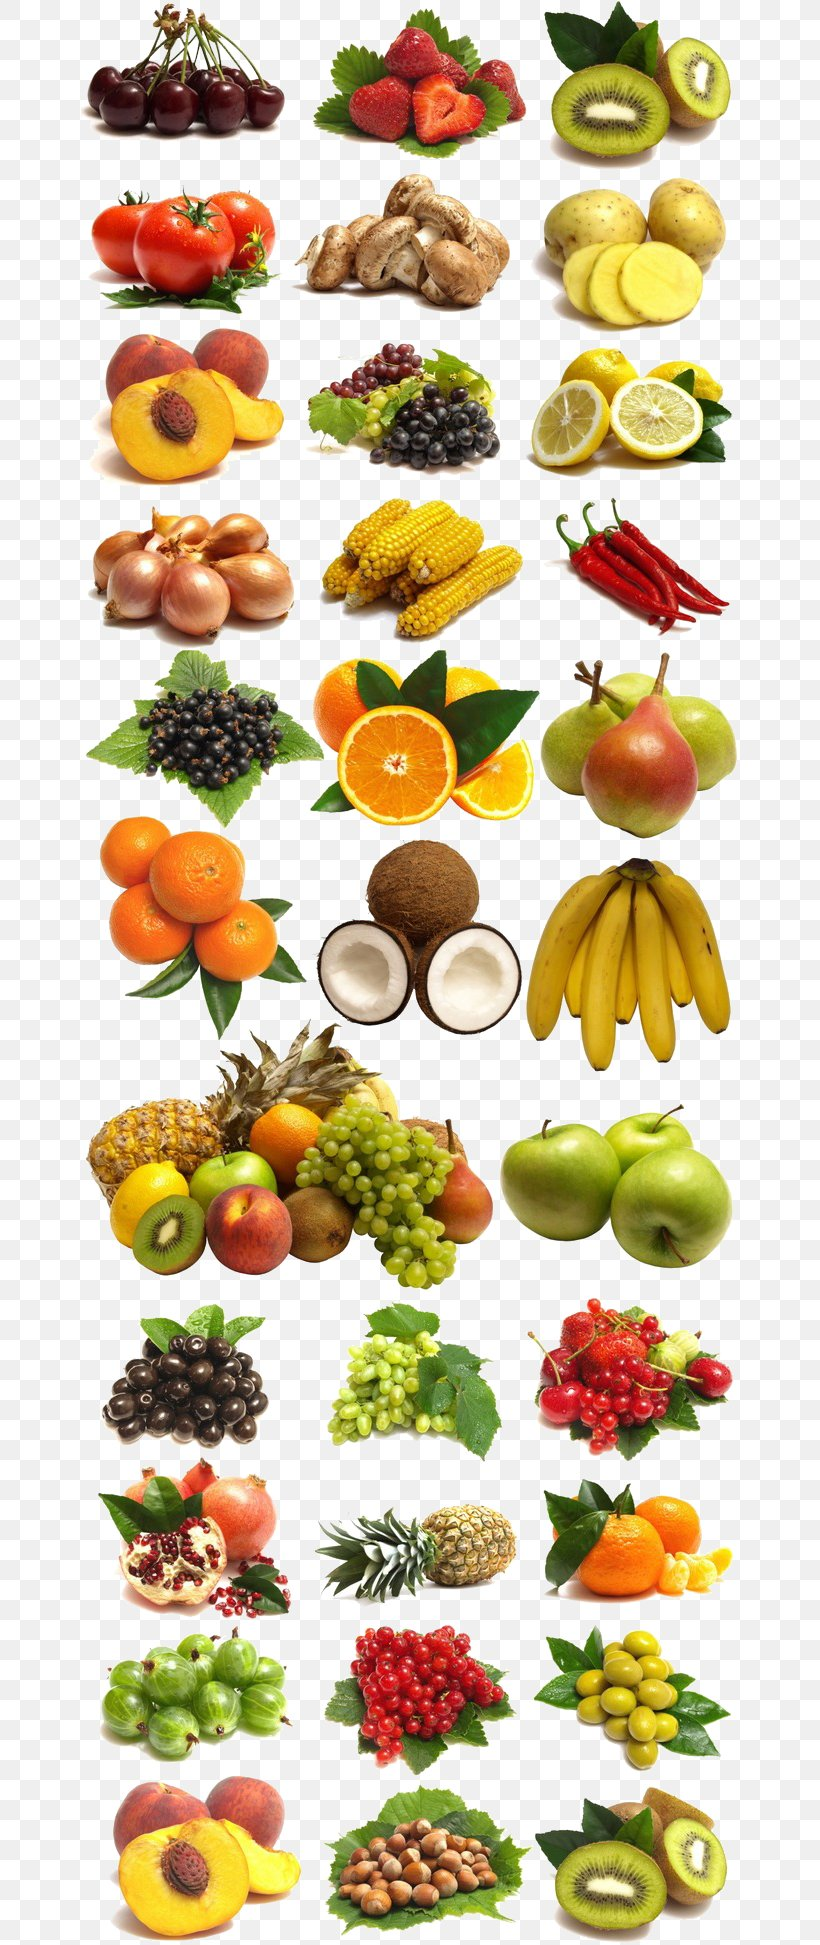 A Large Collection Of Fruits And Vegetables, PNG, 658x1945px, Fruit, Auglis, Cucumber, Diabetes Mellitus, Diabetes Mellitus Type 2 Download Free